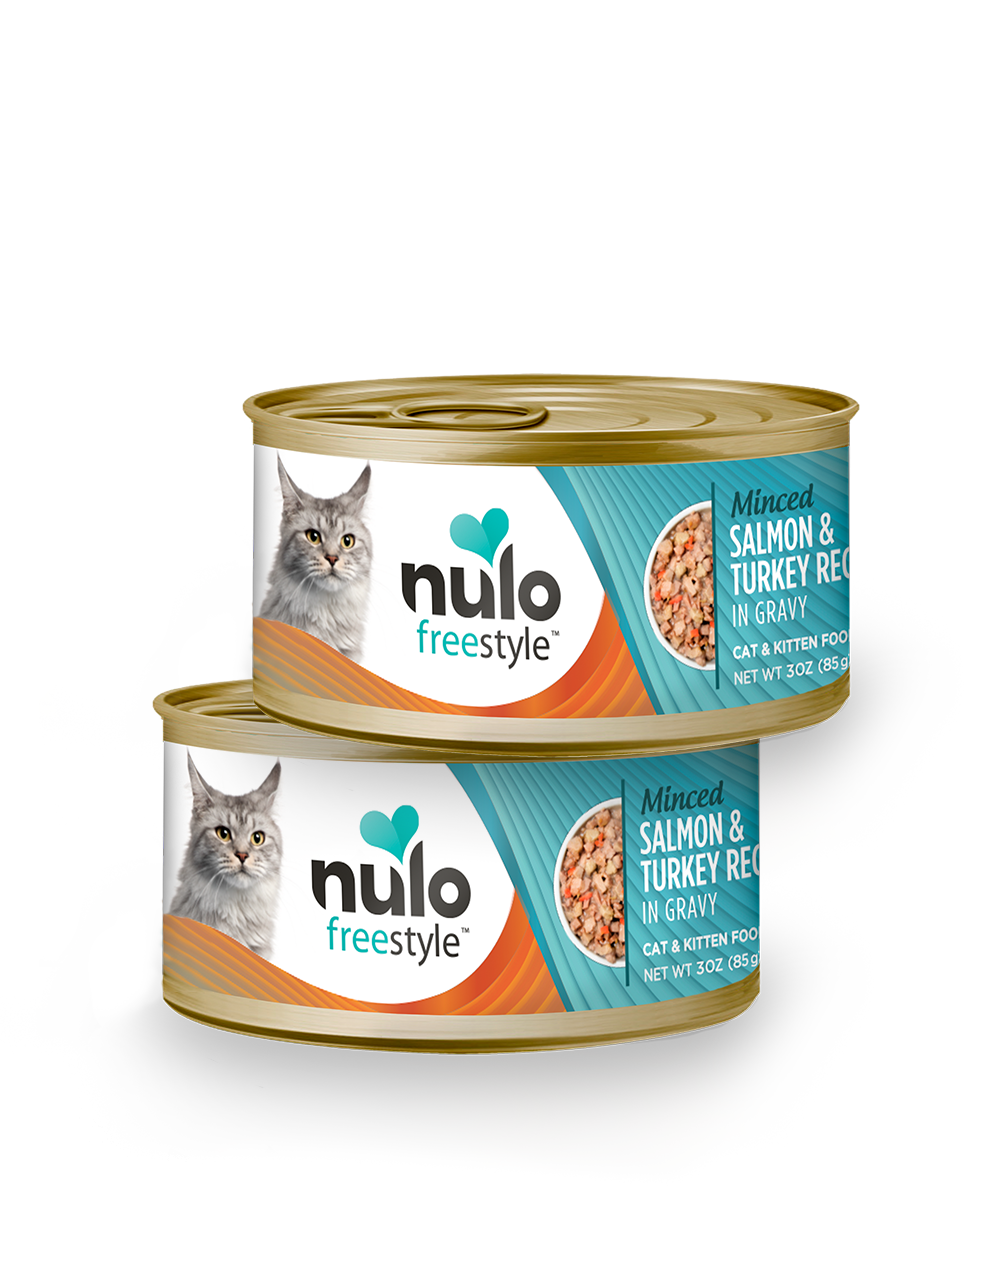 Nulo freestyle 3oz cat cans Salmon&Turkey